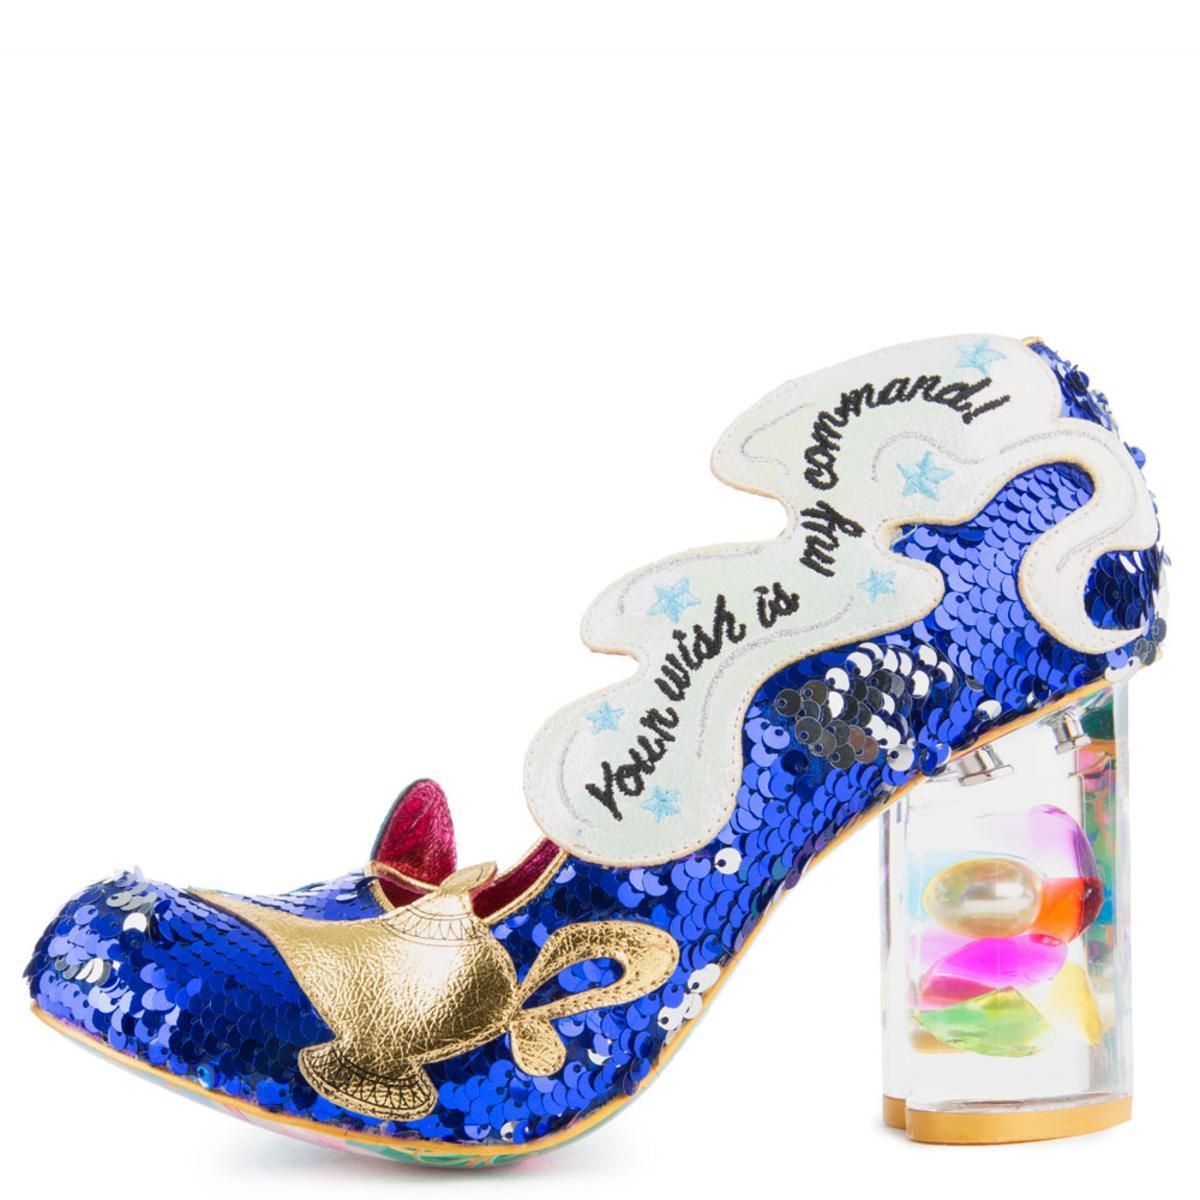 Disney x Irregular Choice You Rubbed?